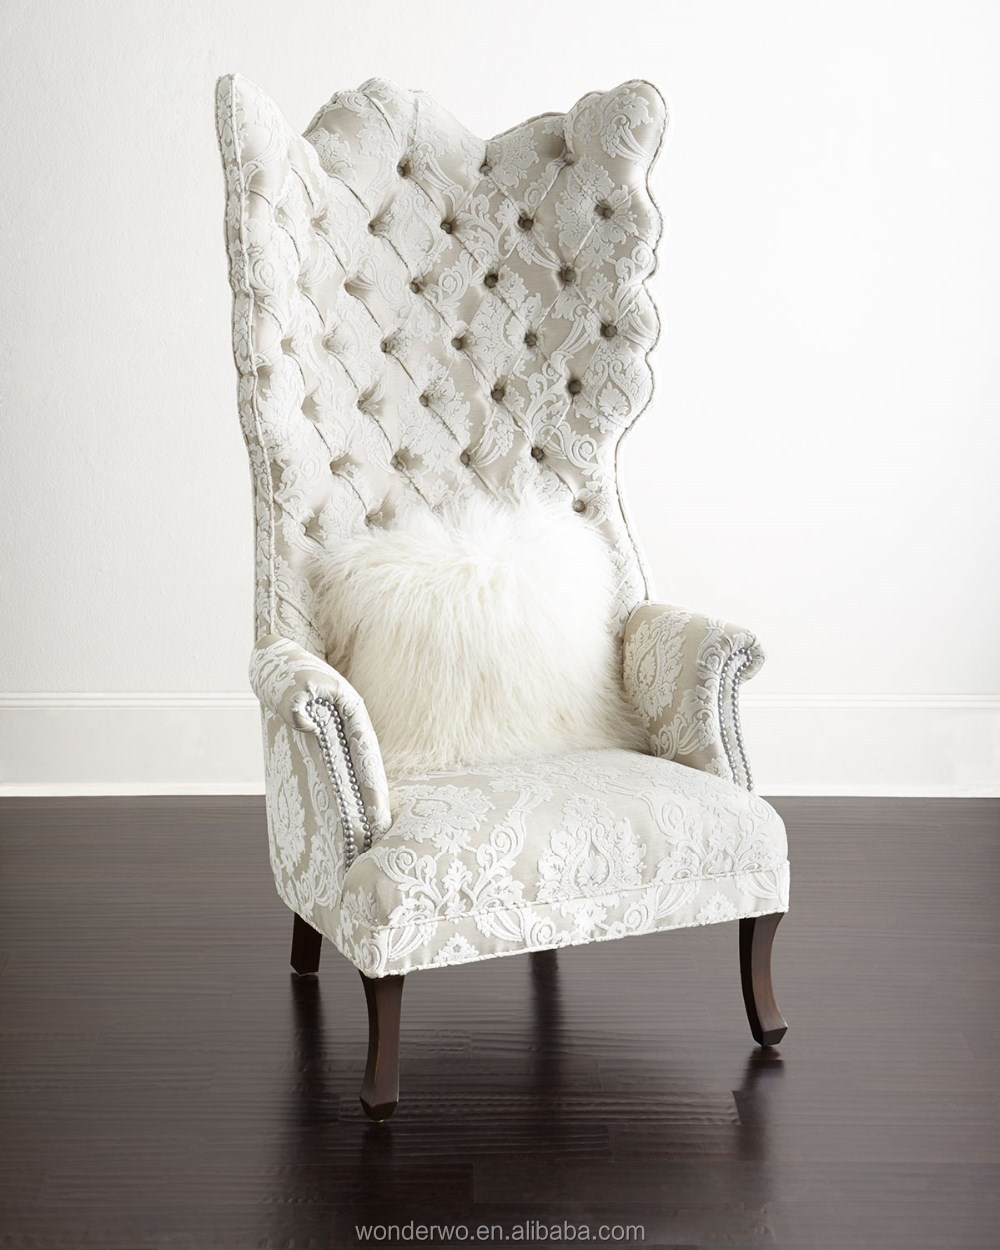 Tufted Wing Chair high back chair Silver-tone nailhead trim curved ...